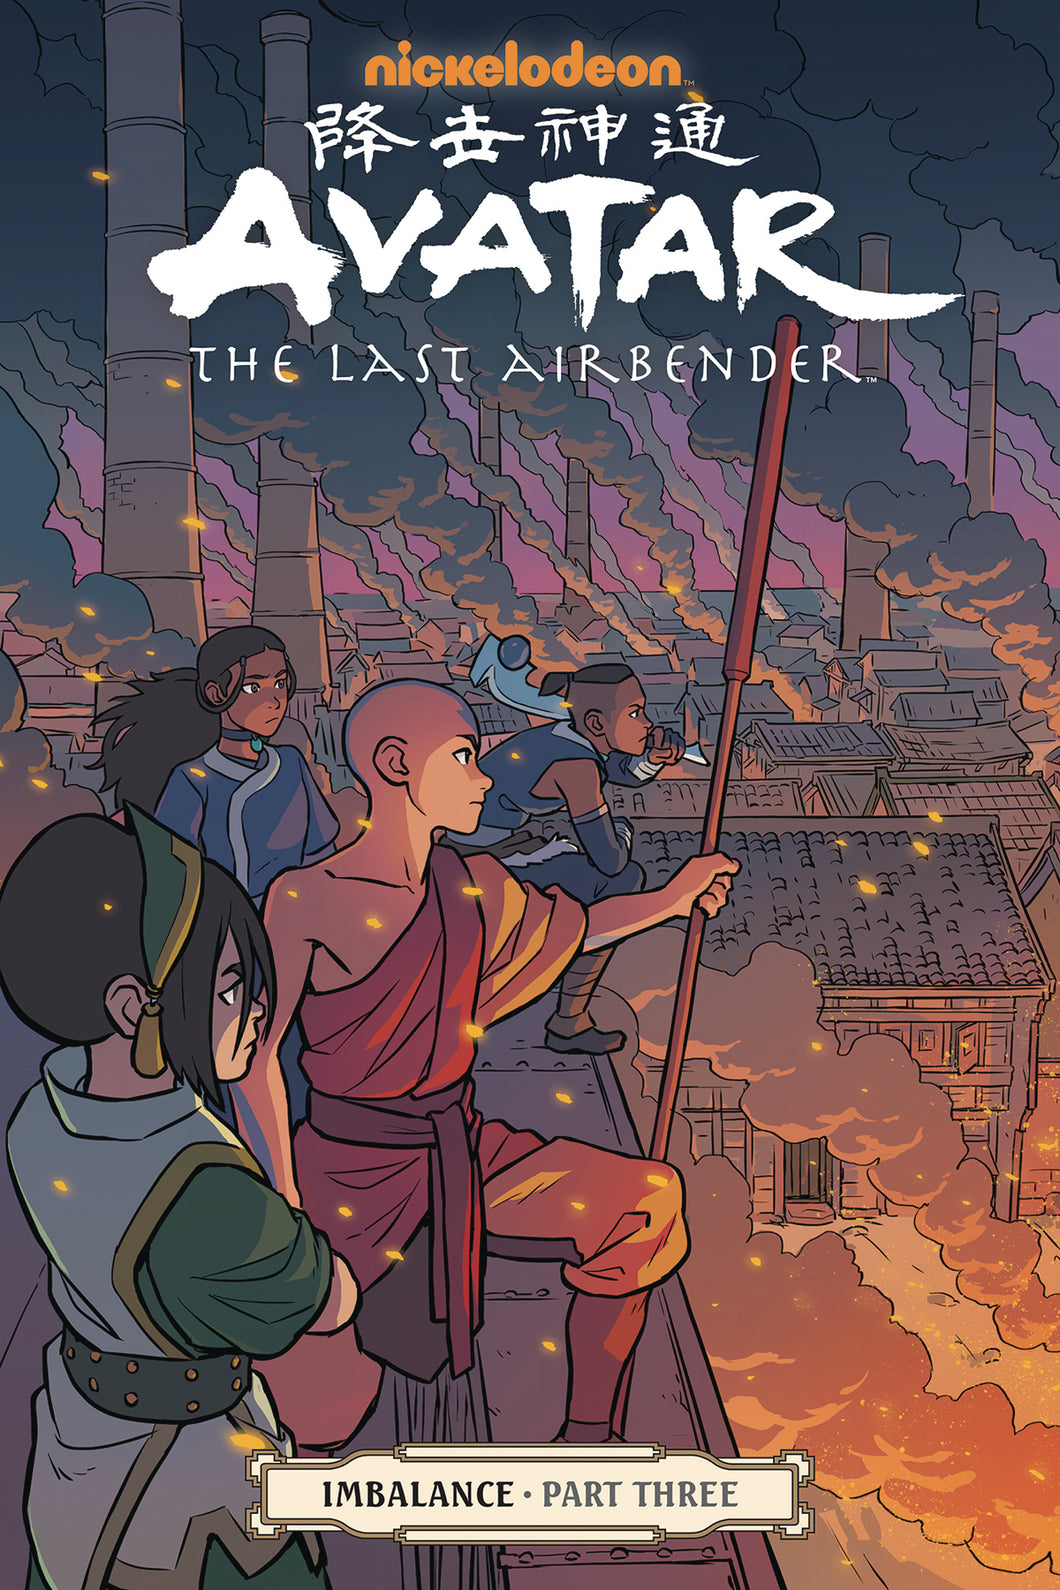 AVATAR LAST AIRBENDER TP VOL 18 IMBALANCE PART 3 (C: 0-1-2)